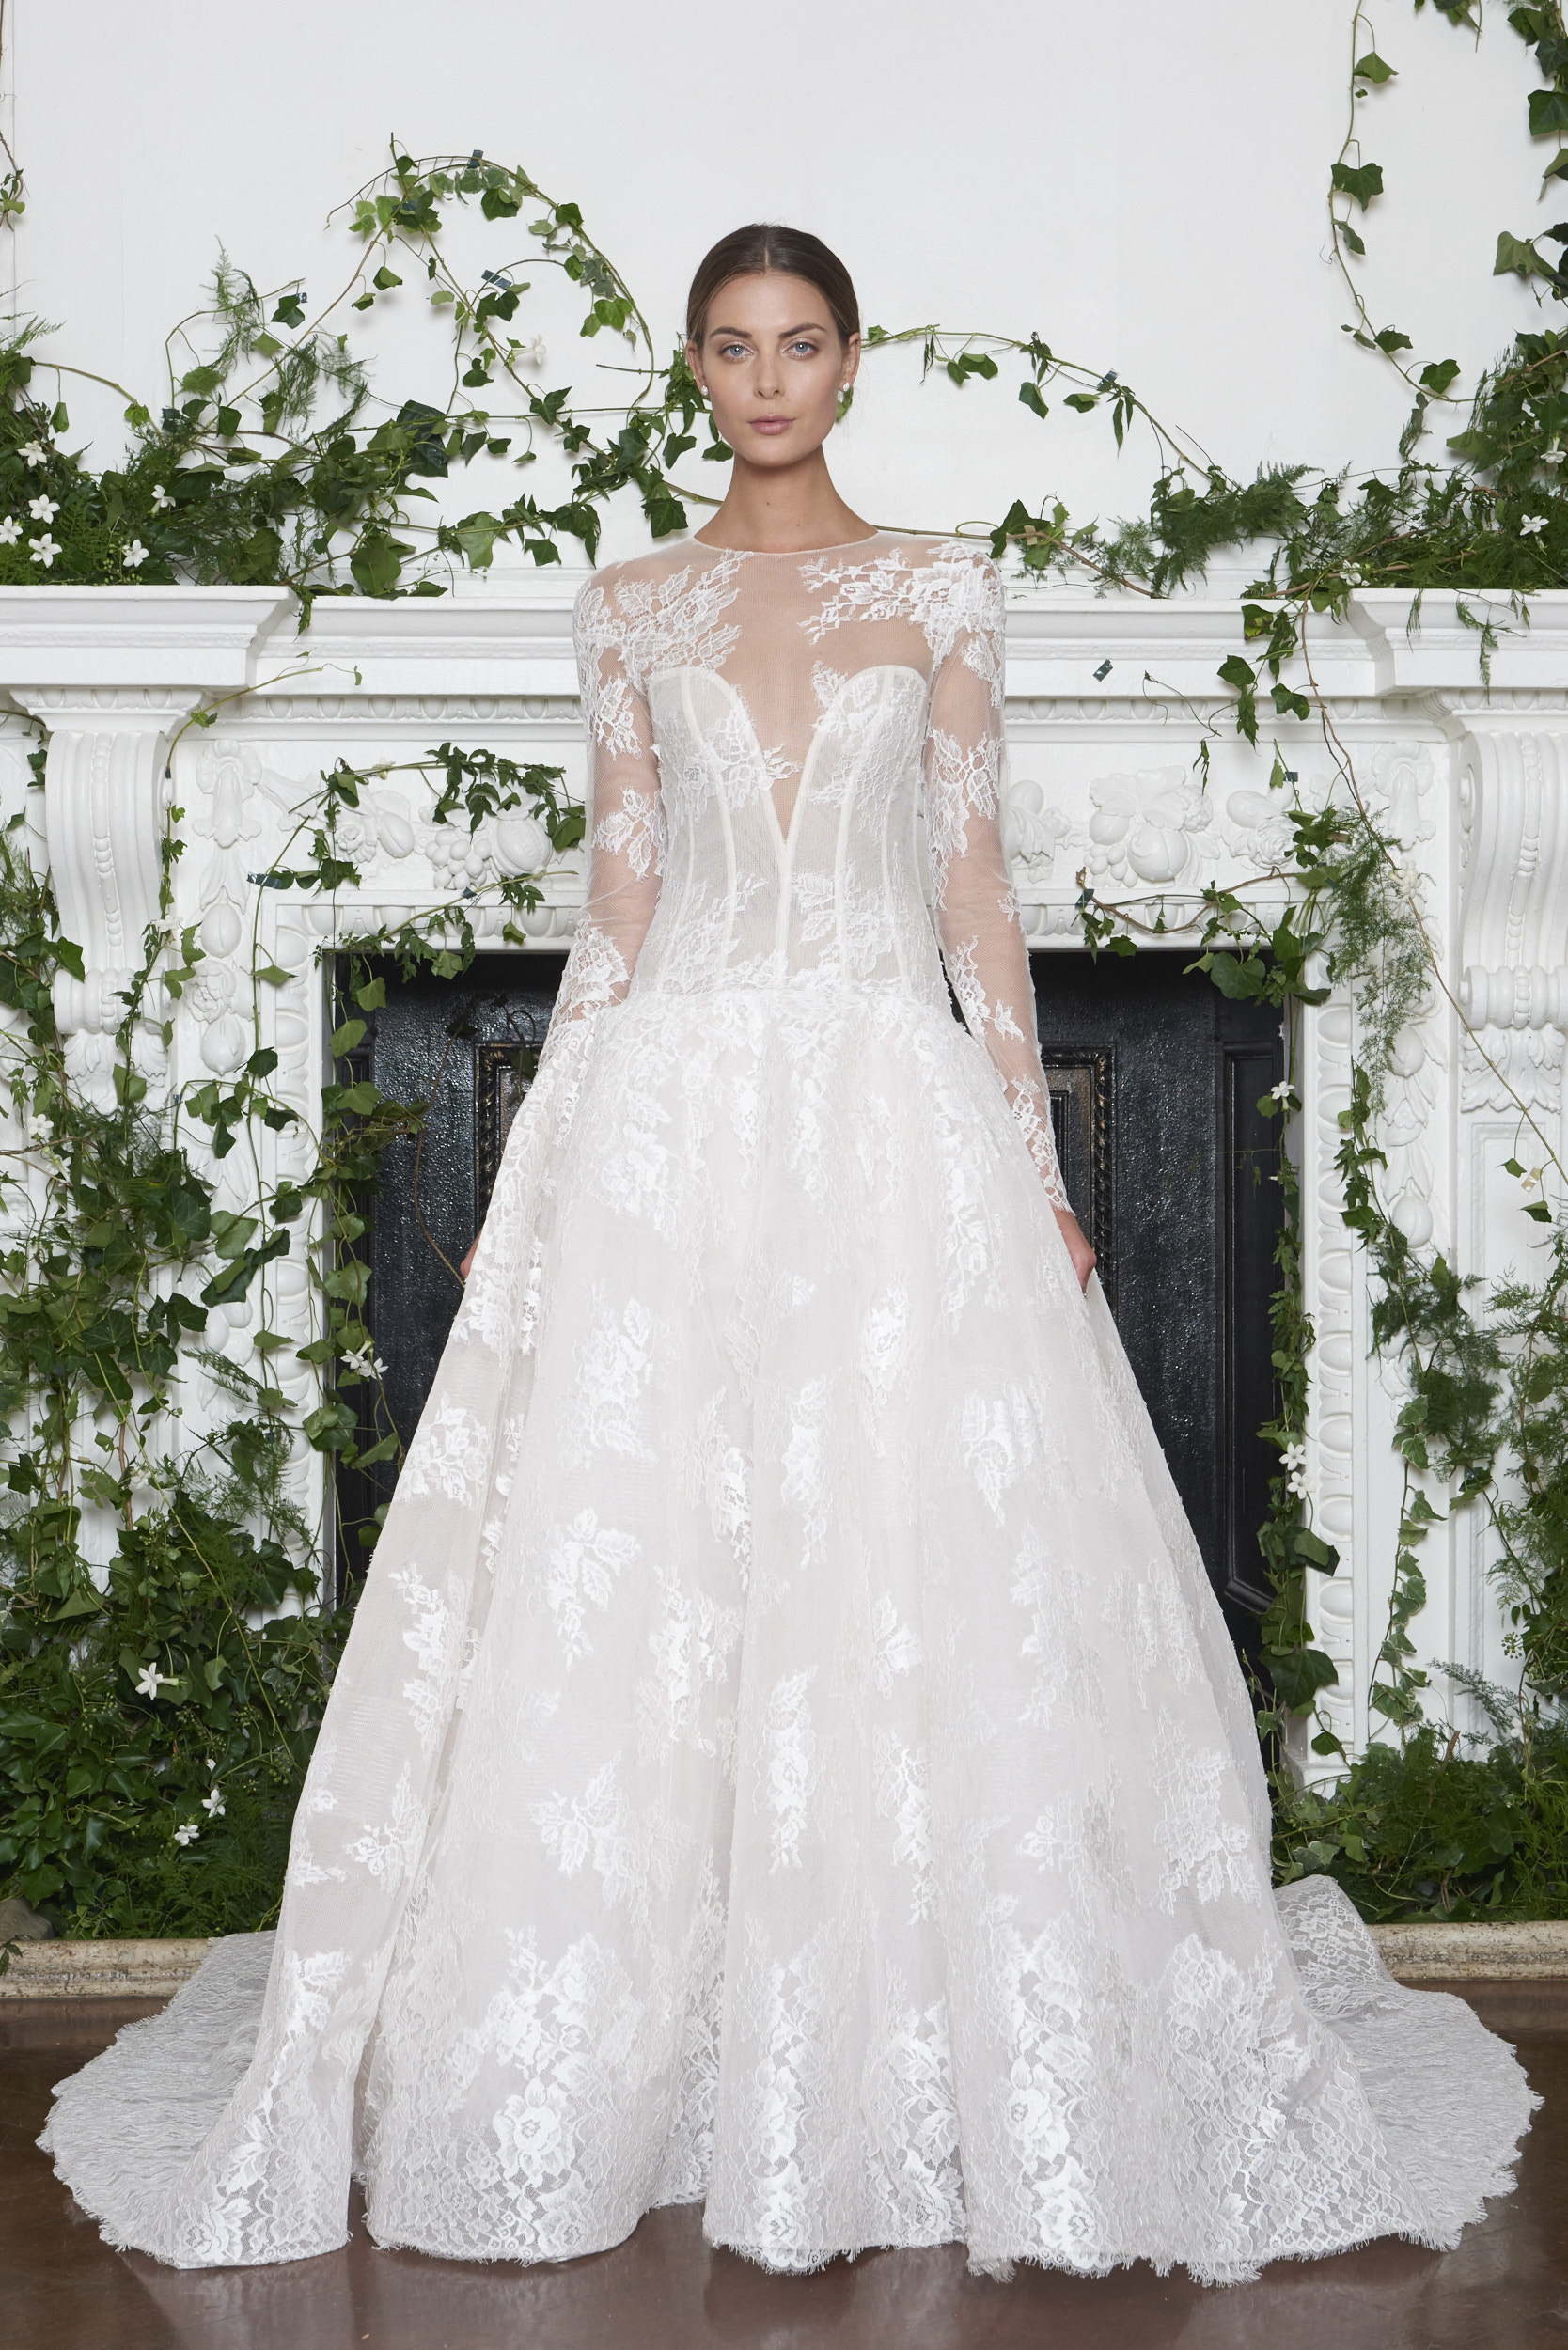 Monique Lhuillier Fall 2018 Ball Gown with Long Sleeves